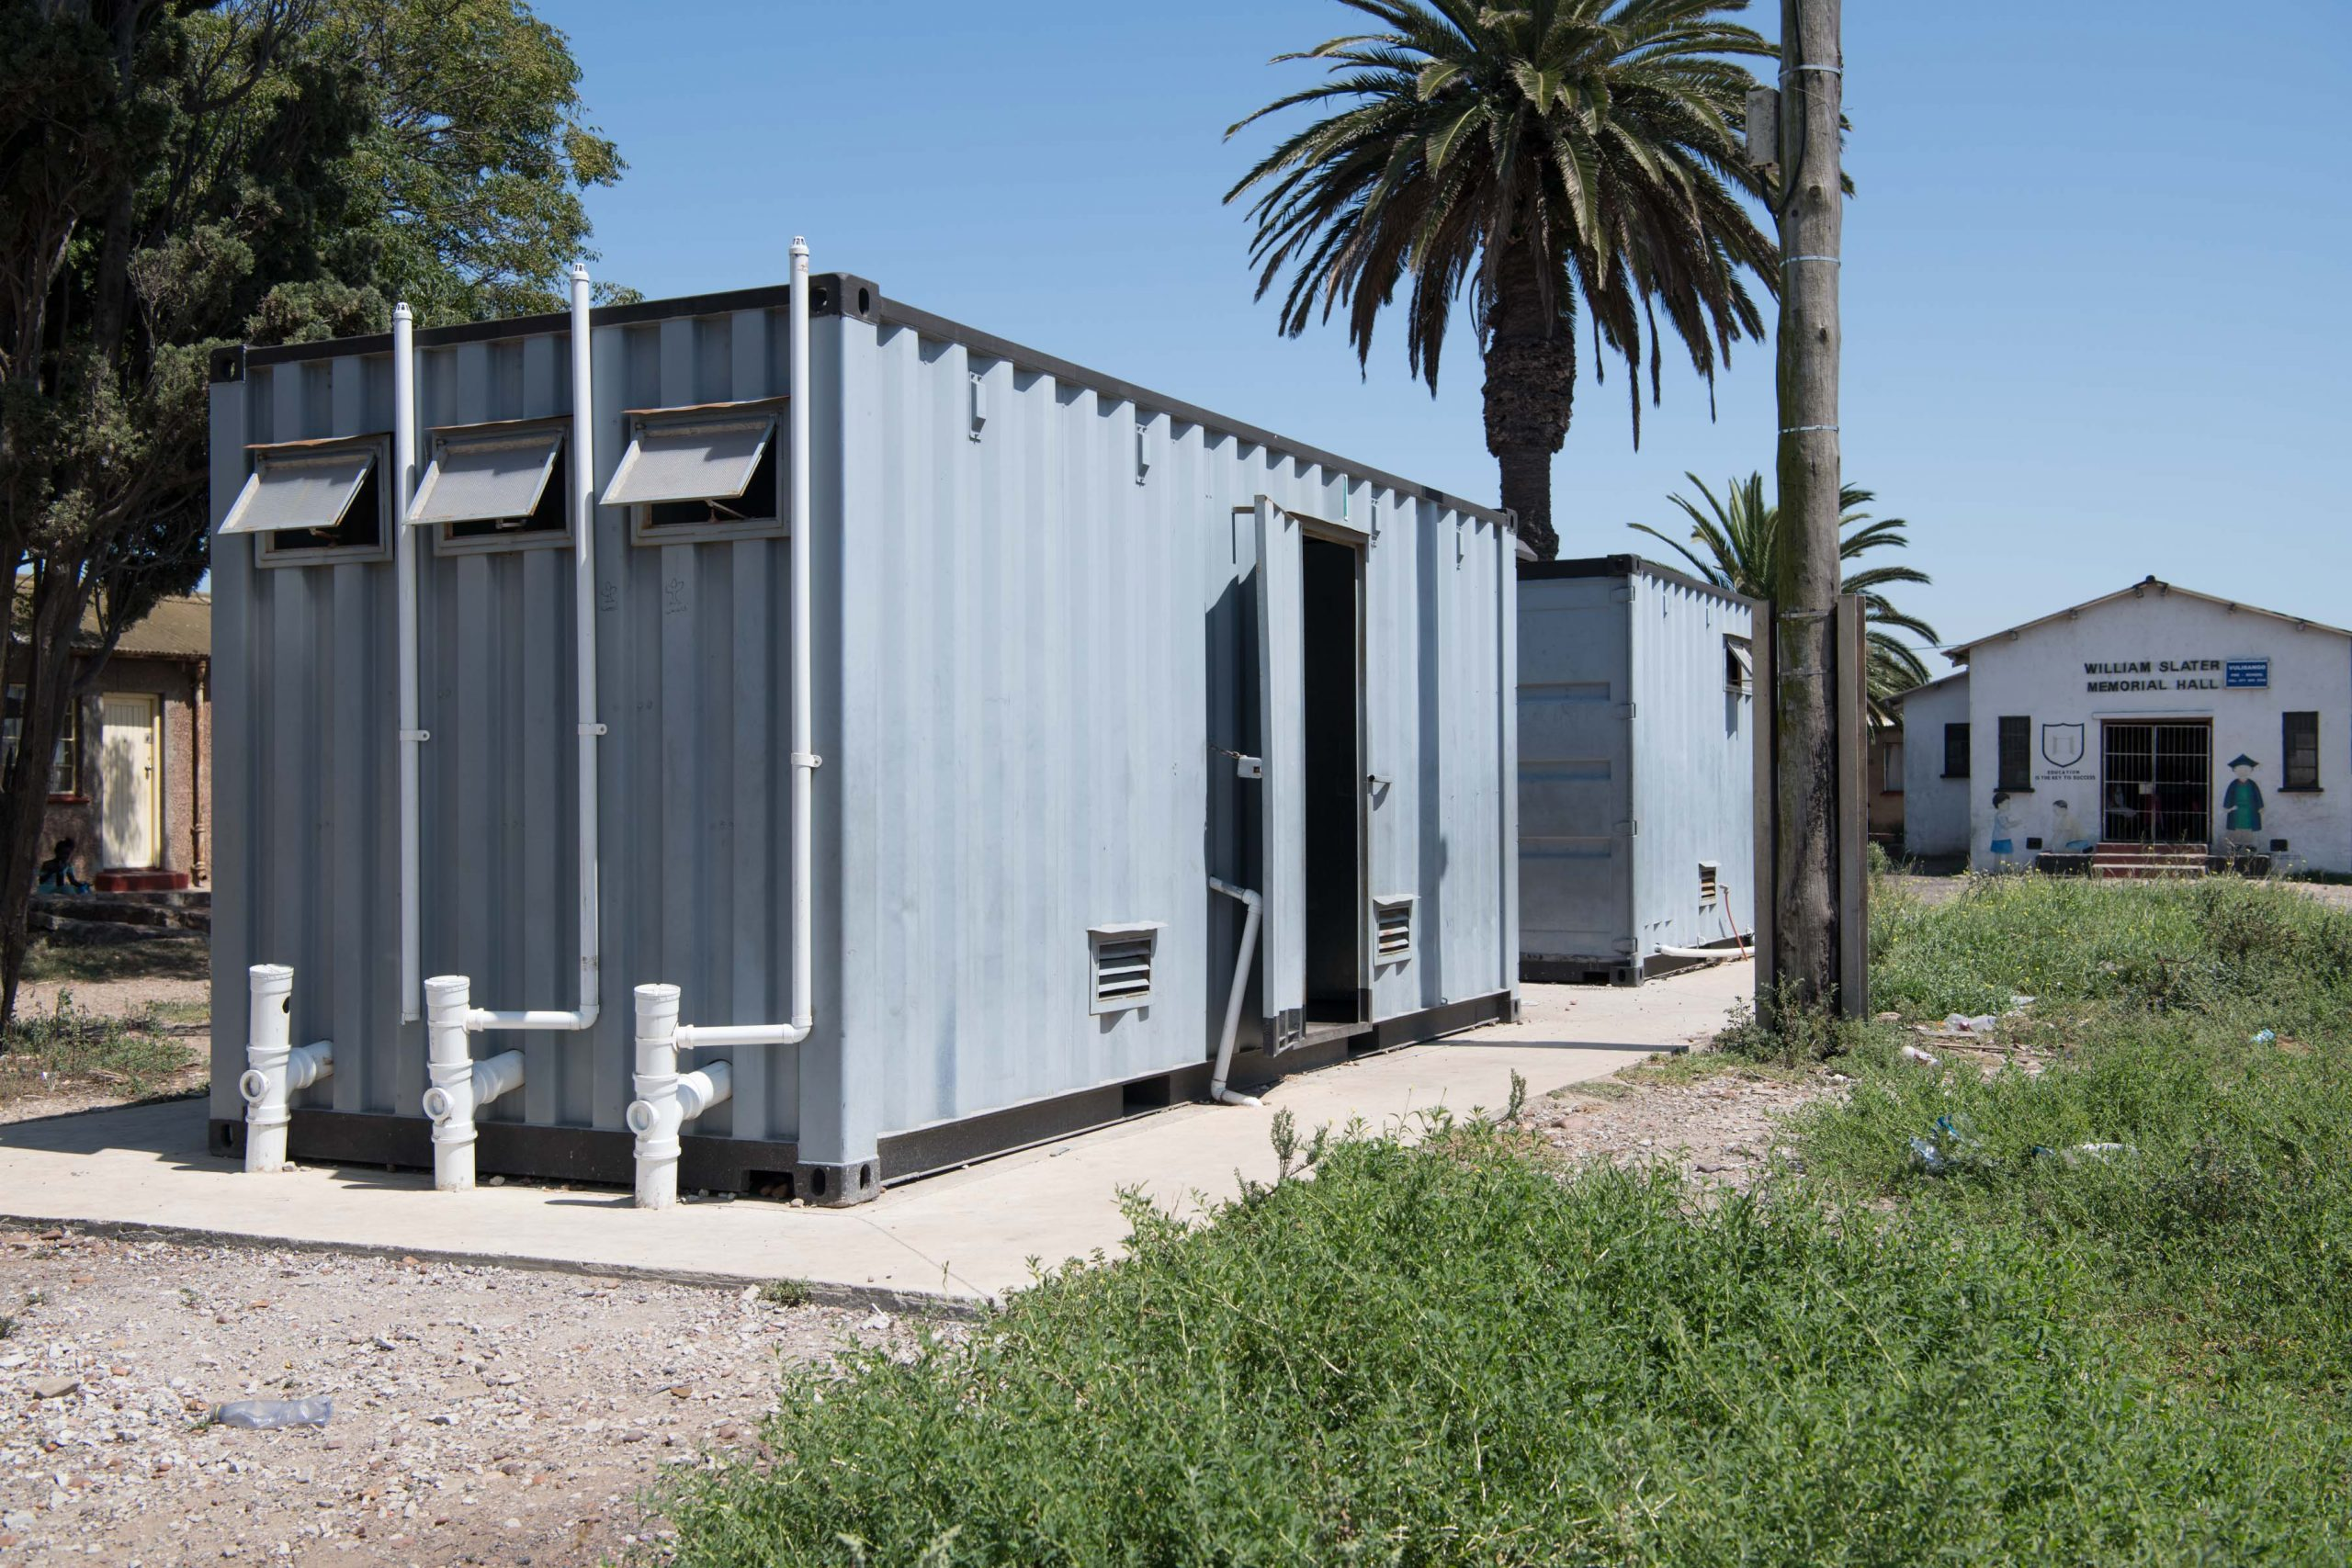 3 February 2020: These containers are meant to be the men's and women's ablution blocks, but only one of them works so everyone has to share the same facilities.